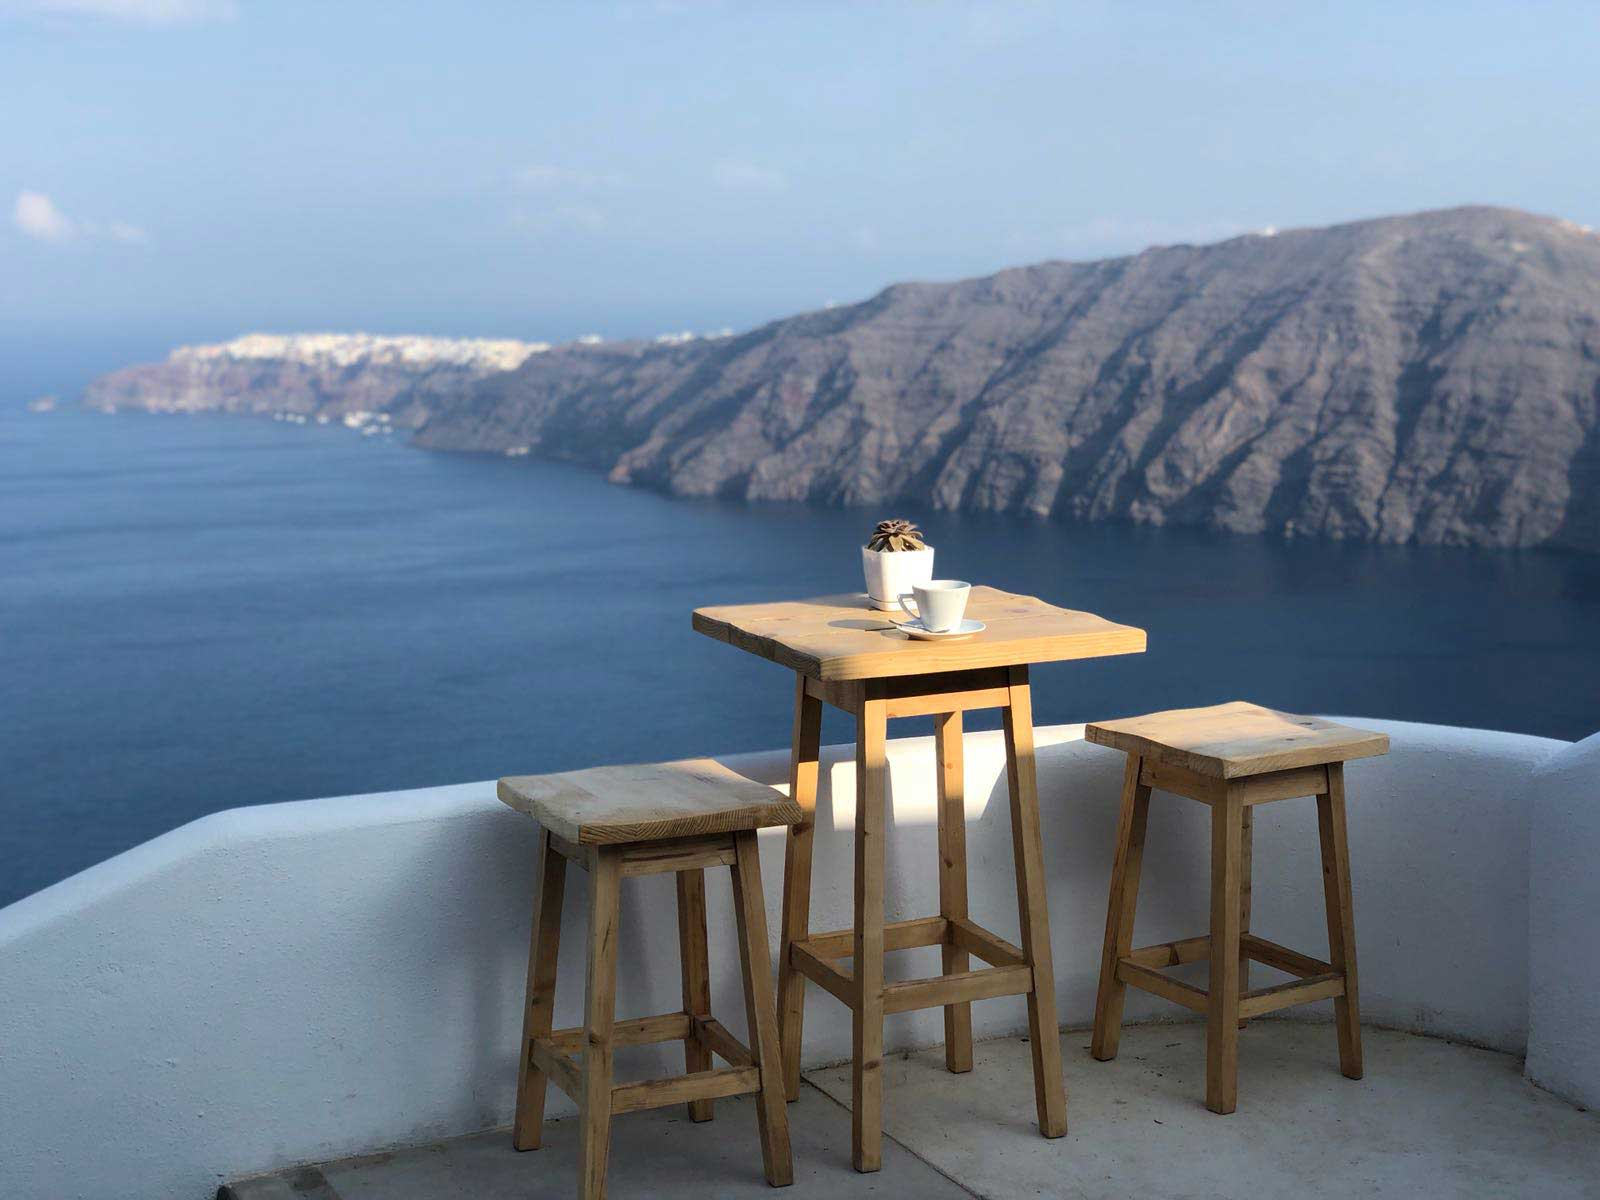 Santorini Whole Self Retreat 2018 - the view from our accommodation